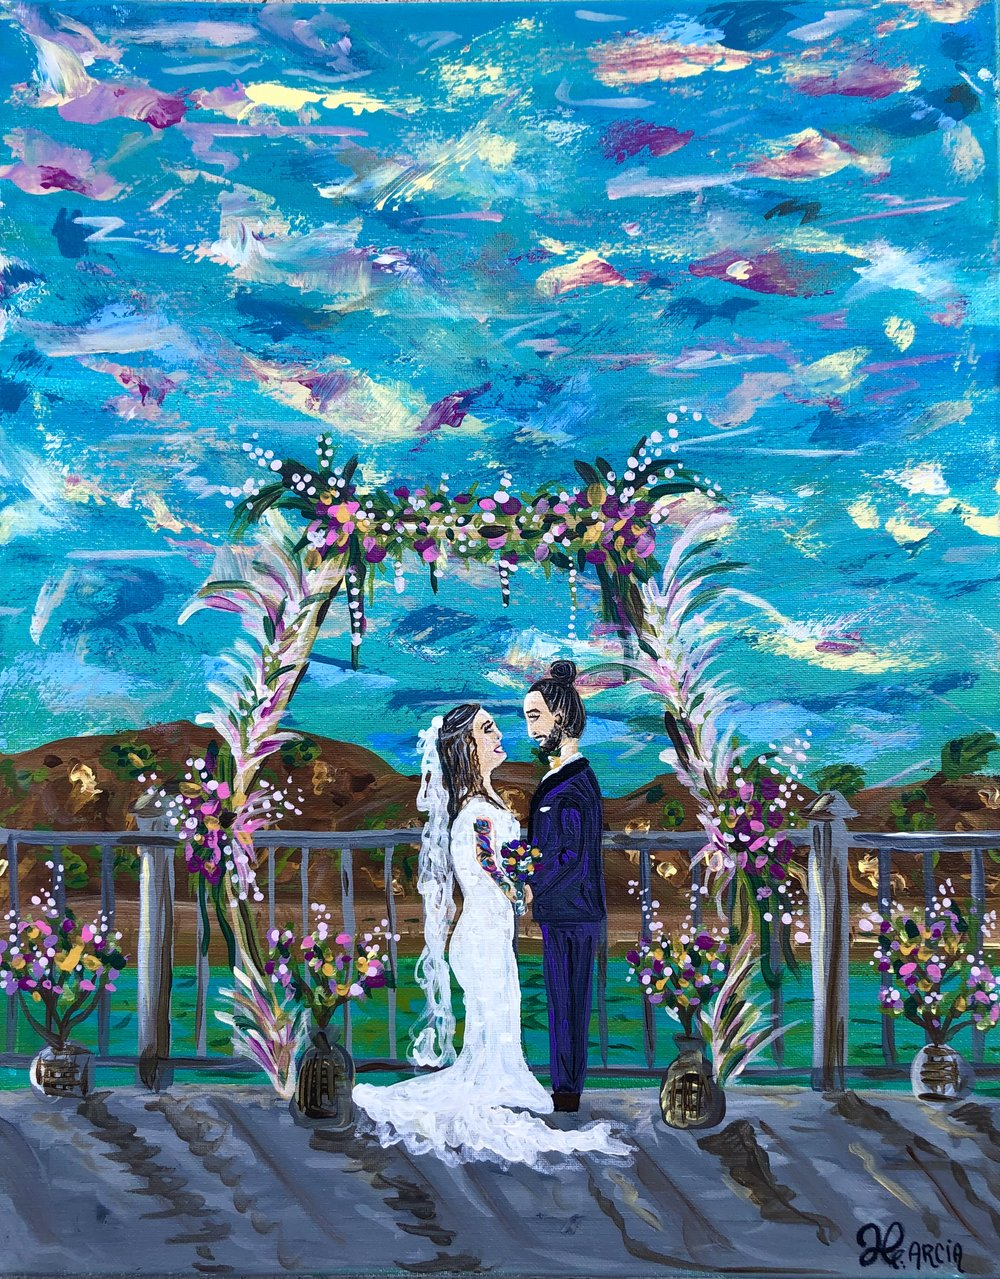 This was painting at Aventura Ocean club in Dana Point Overlooking the beautful ocean